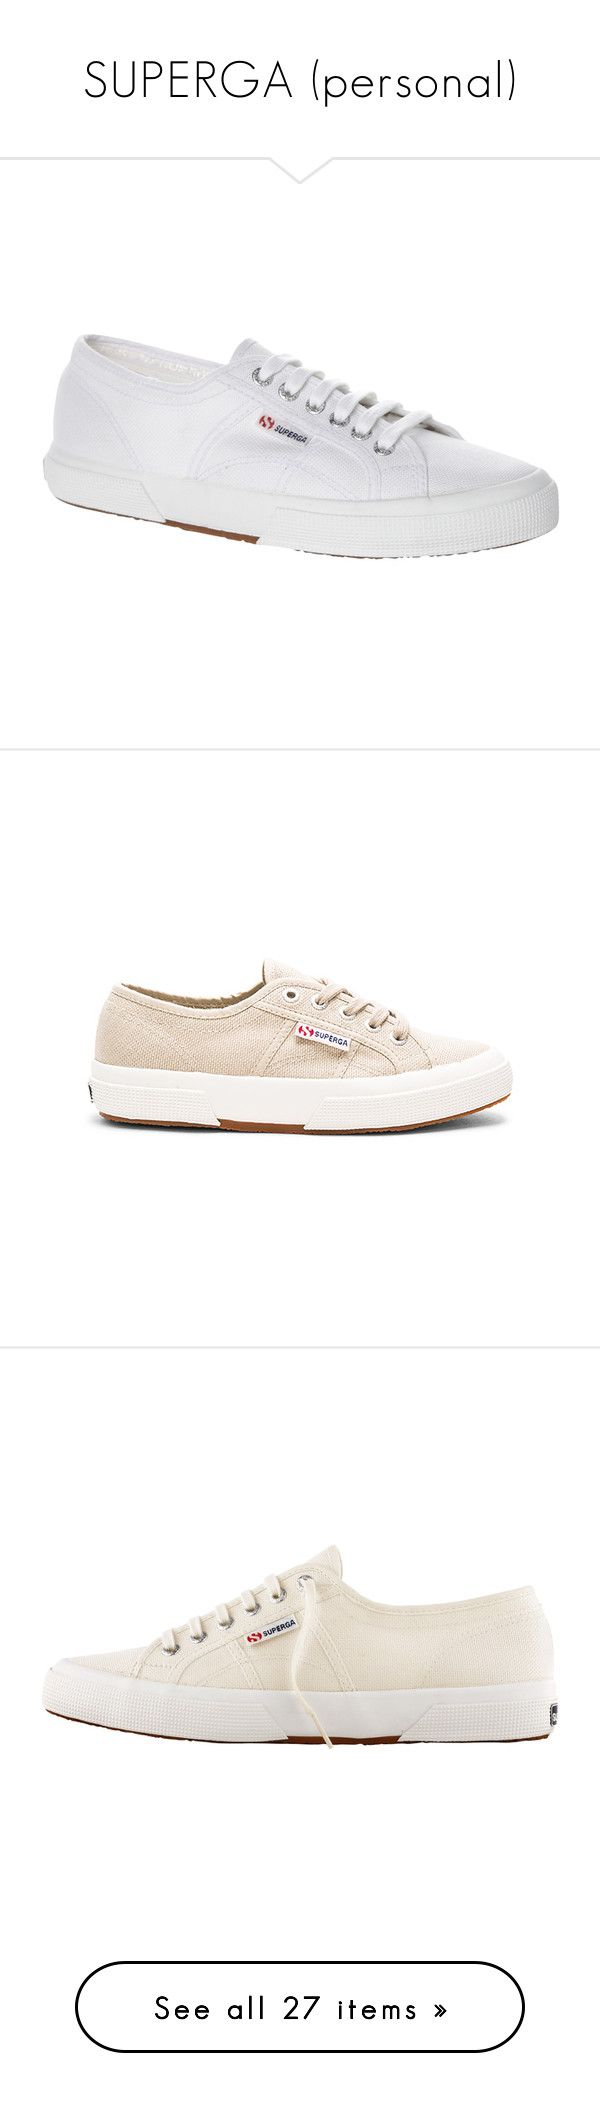 """SUPERGA (personal)"" by whoranizer ❤ liked on Polyvore featuring shoes, sneakers, white, white canvas sneakers, tennis trainer, flat sneakers, lightweight tennis shoes, lightweight sneakers, laced shoes and superga sneakers"